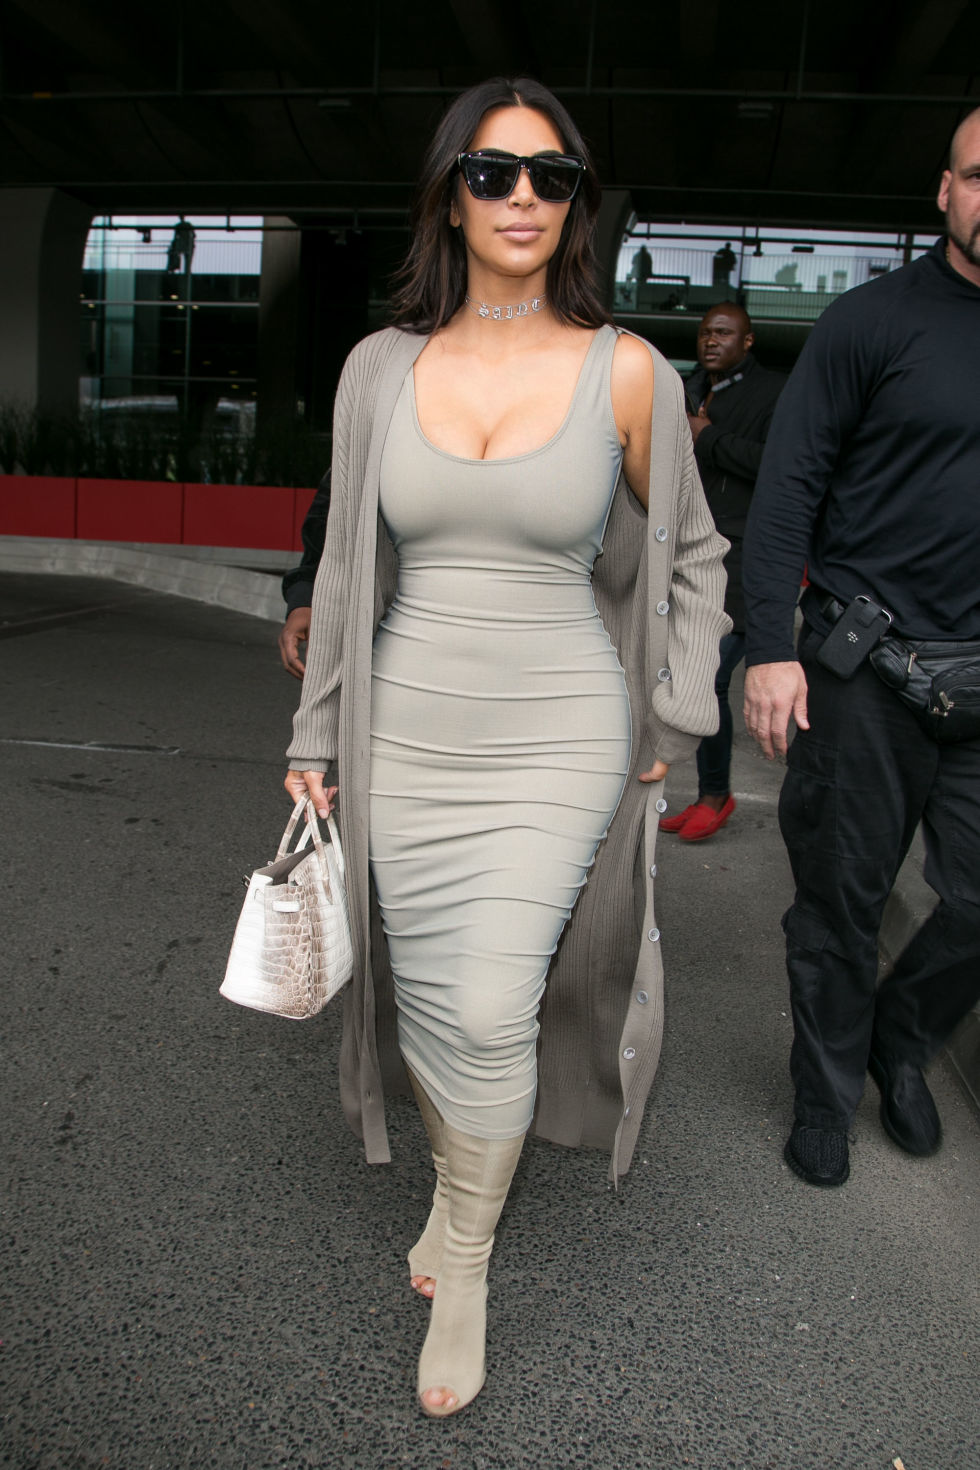 Image result for kim kardashian 2016